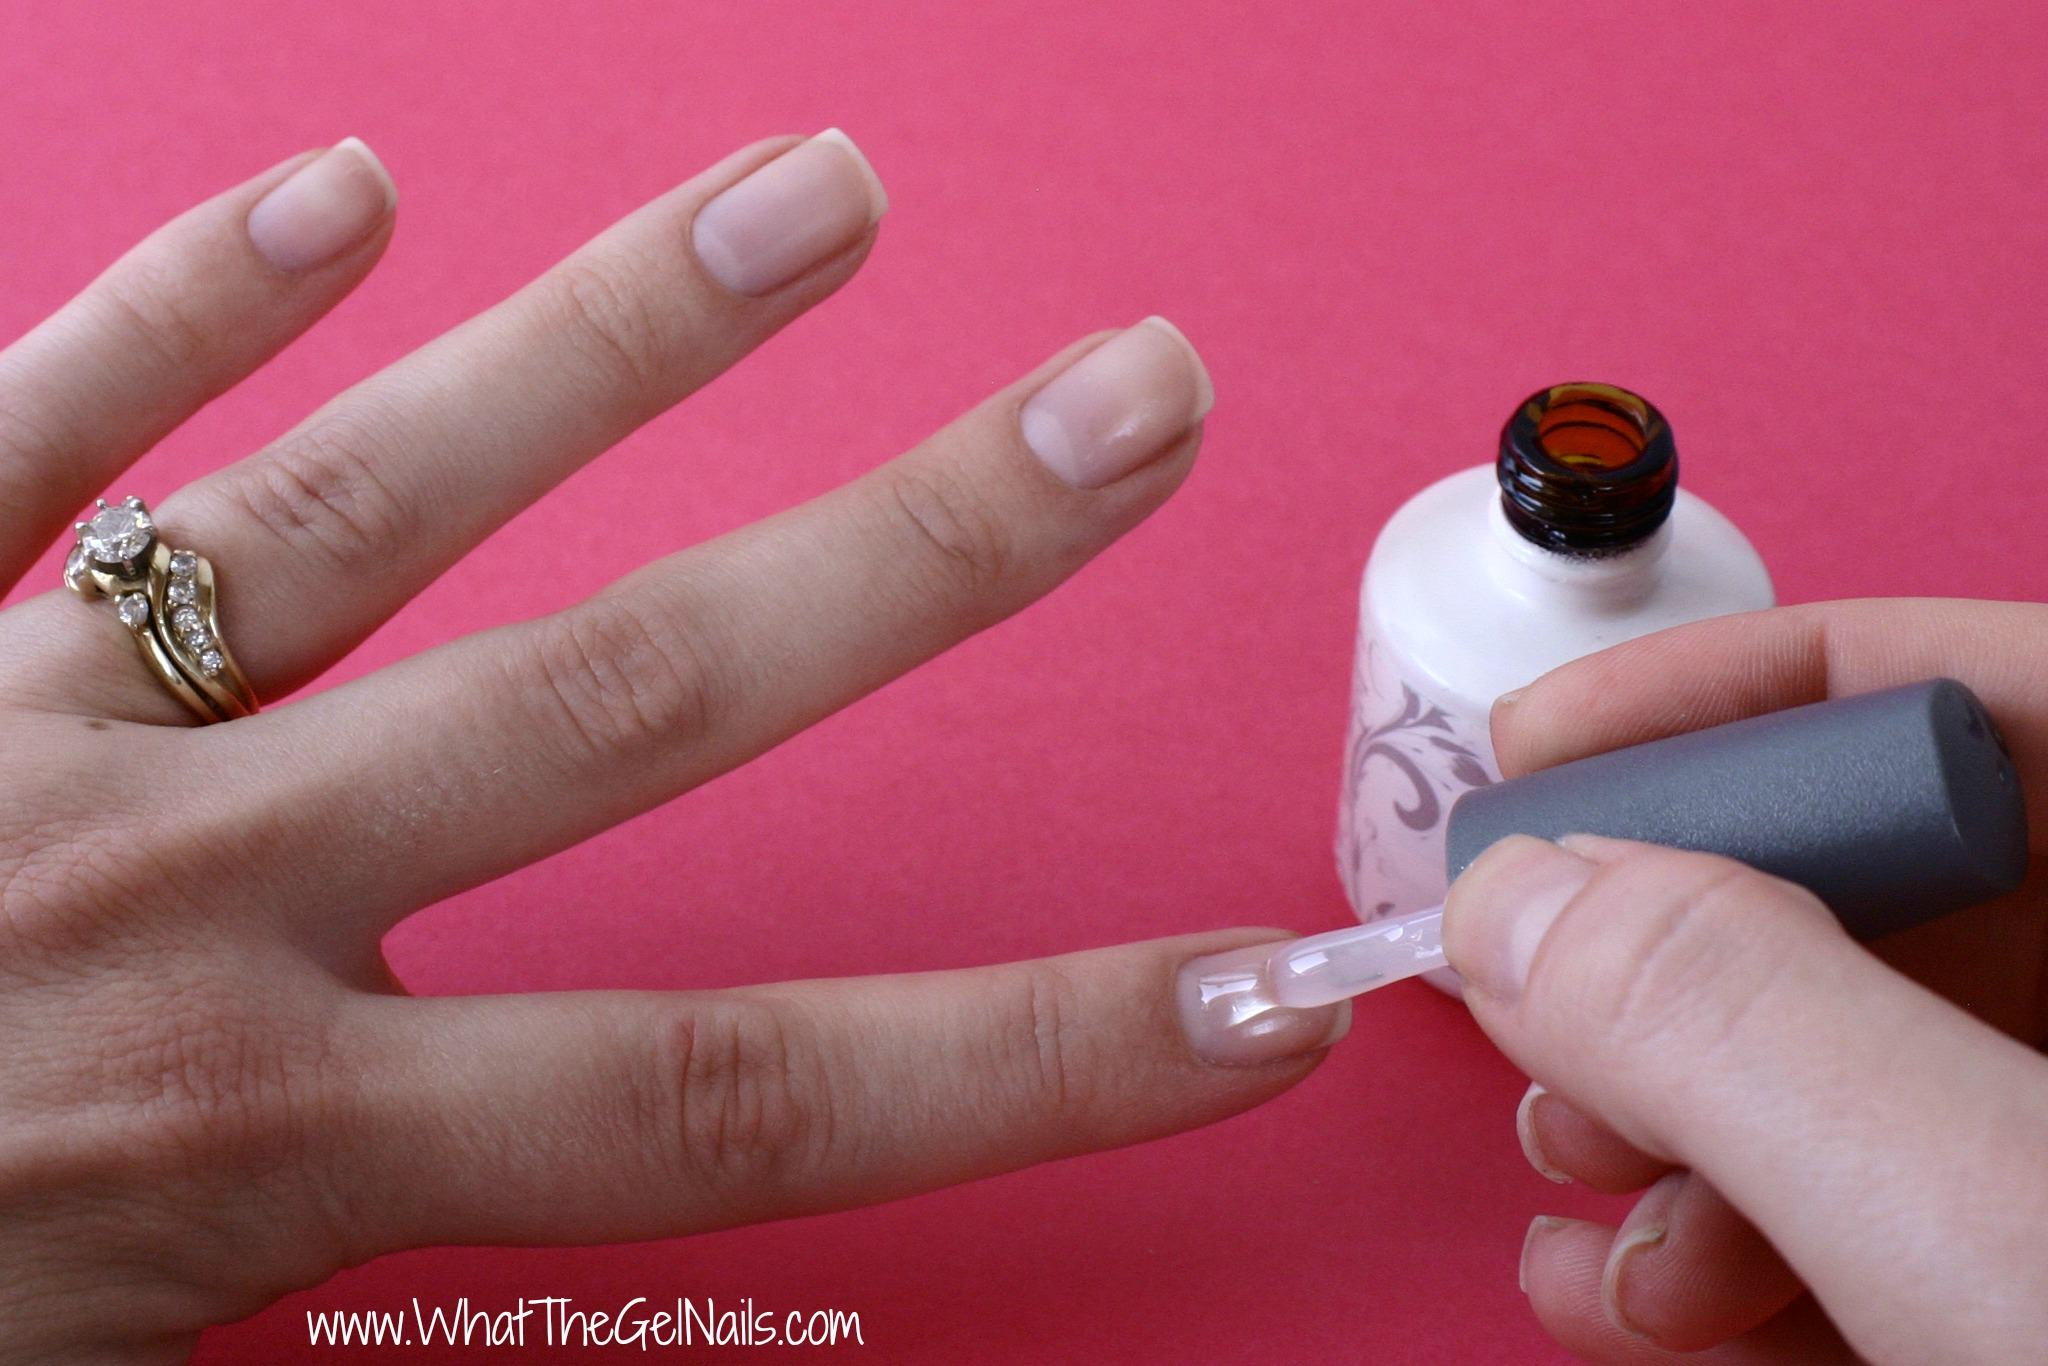 How to do gel nails at home how to do gel nails at home paint on base coat and cure in uv solutioingenieria Gallery